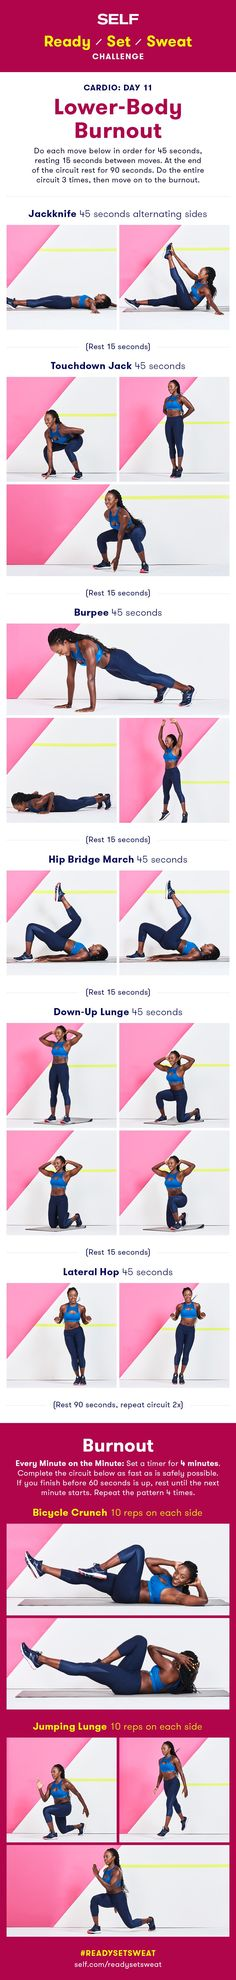 Lower-Body Burnout